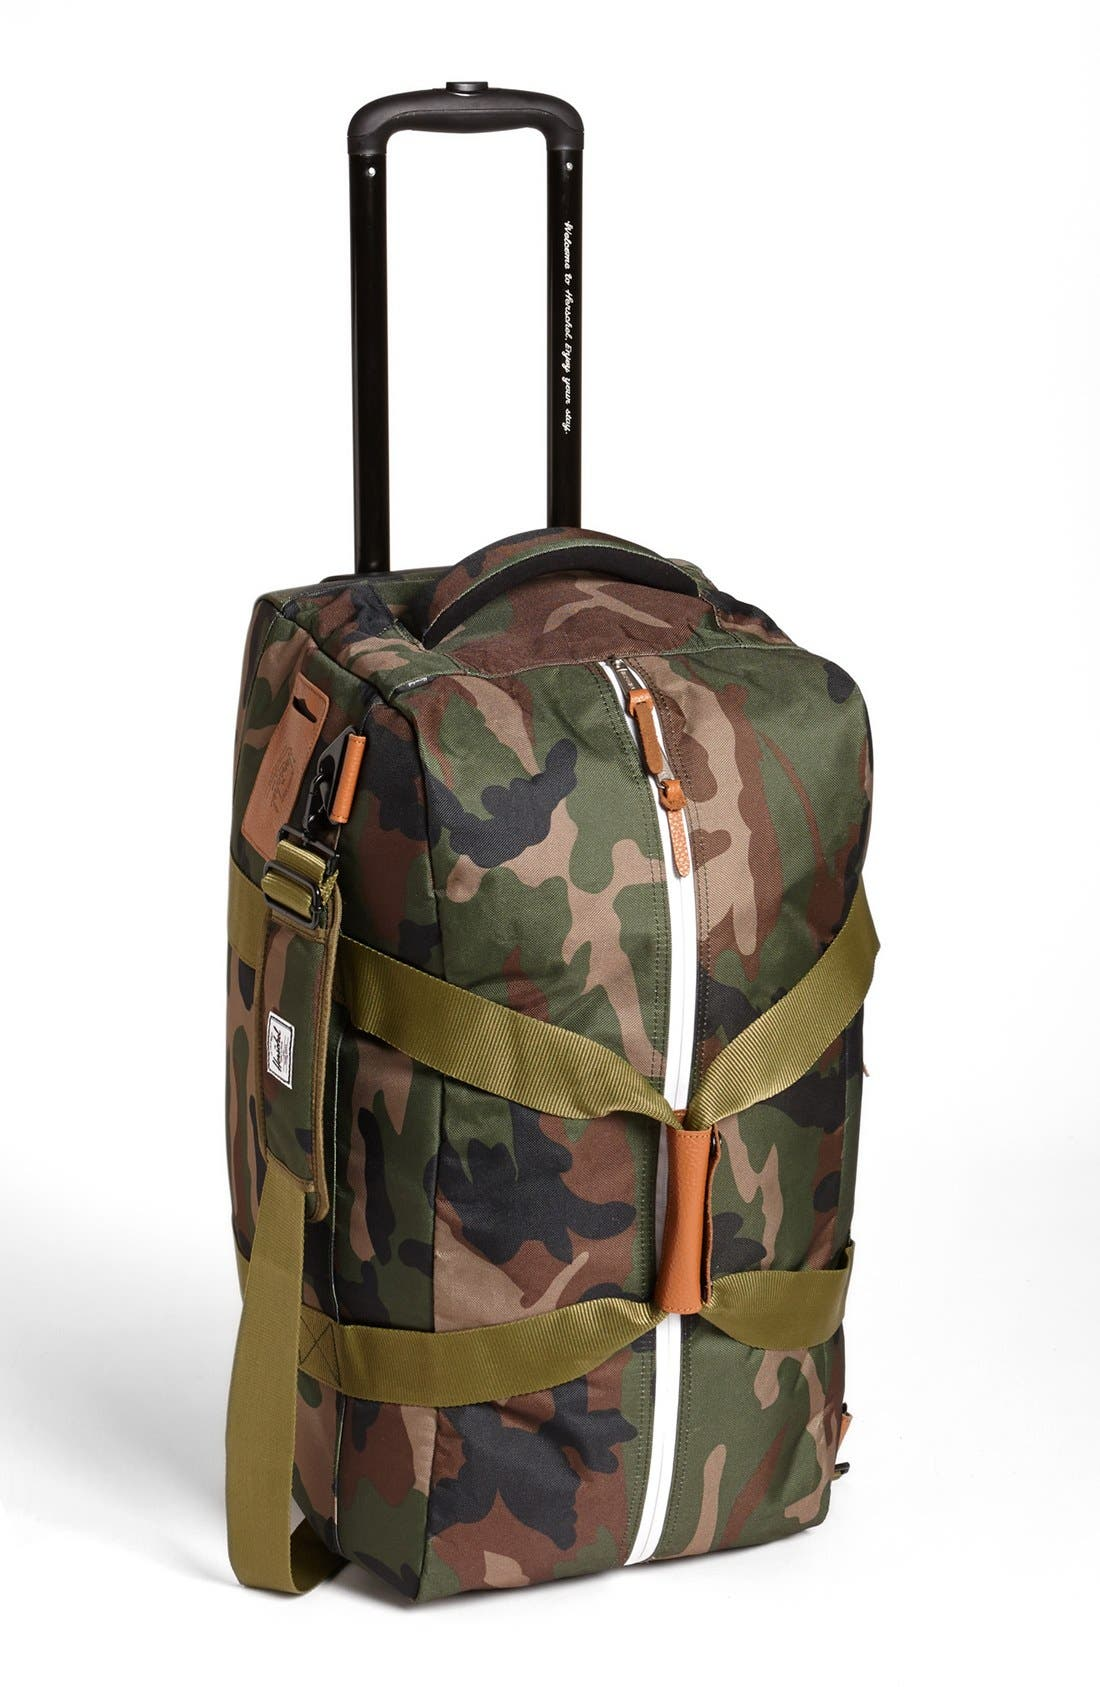 Alternate Image 1 Selected - Herschel Supply Co. 'Wheelie Outfitter' Travel Bag (24 Inch)